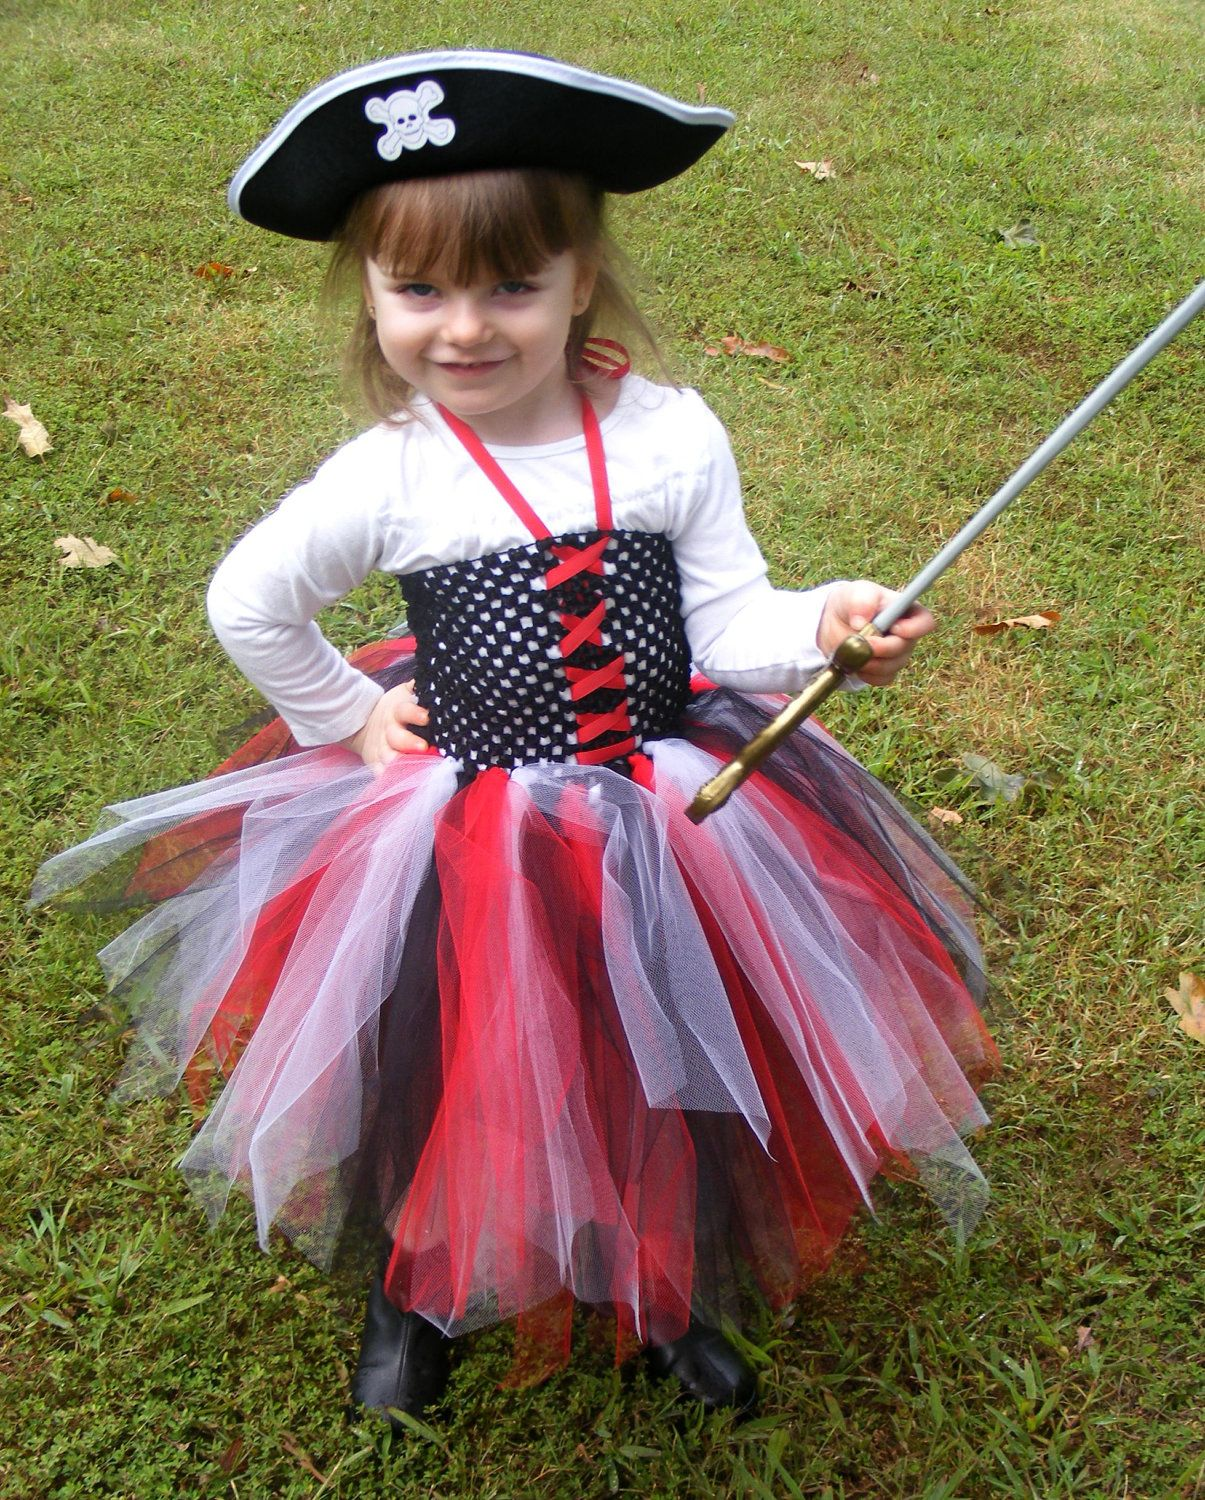 Pirate Tutu Halter Dress Costume-Includes Hat, via Etsy.  My in-laws are doing a pirate theme party